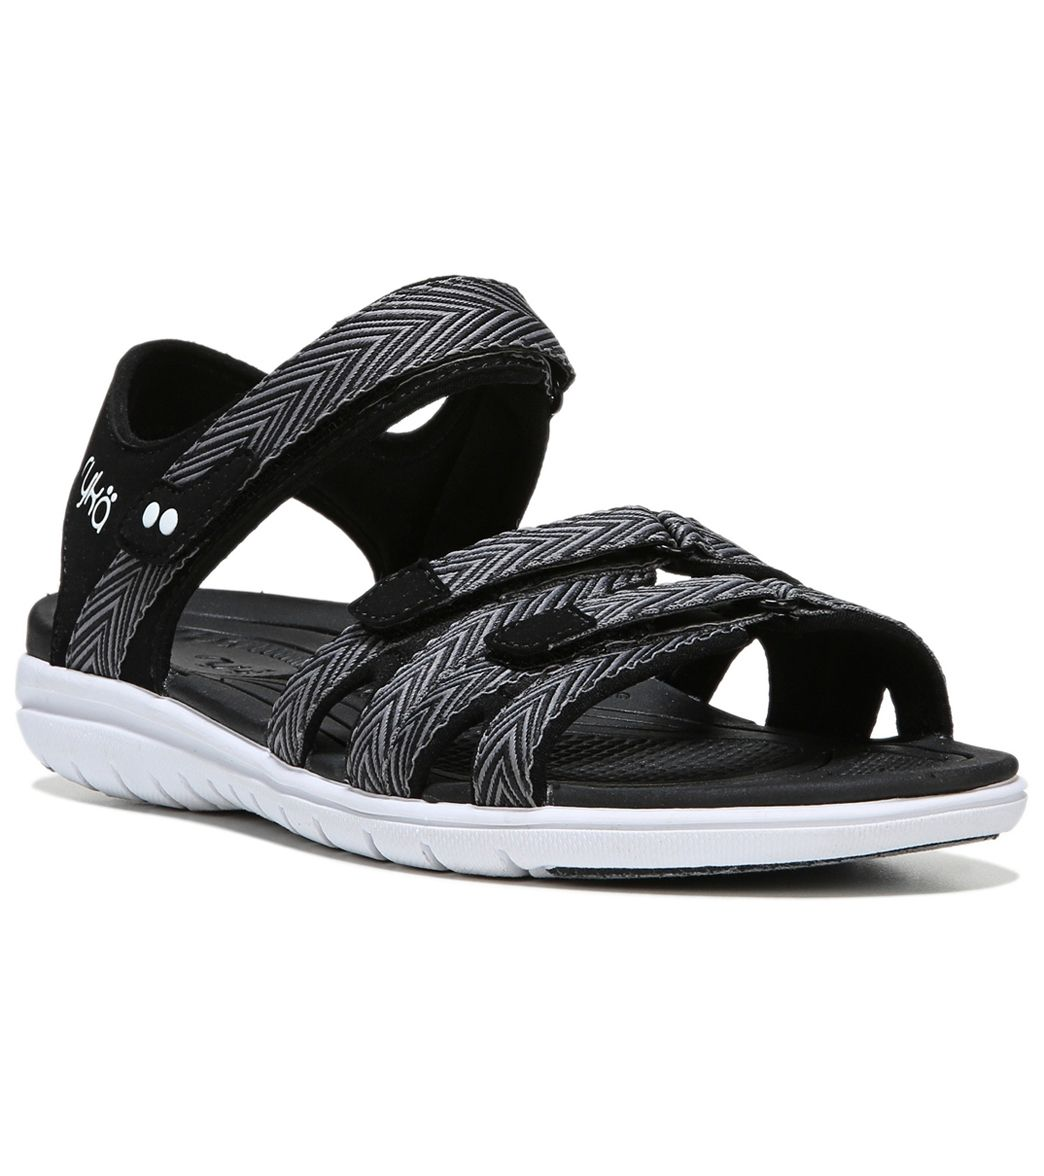 Ryka Women's Savannah Sport Sandal, Black/Frost Grey, 11 M US